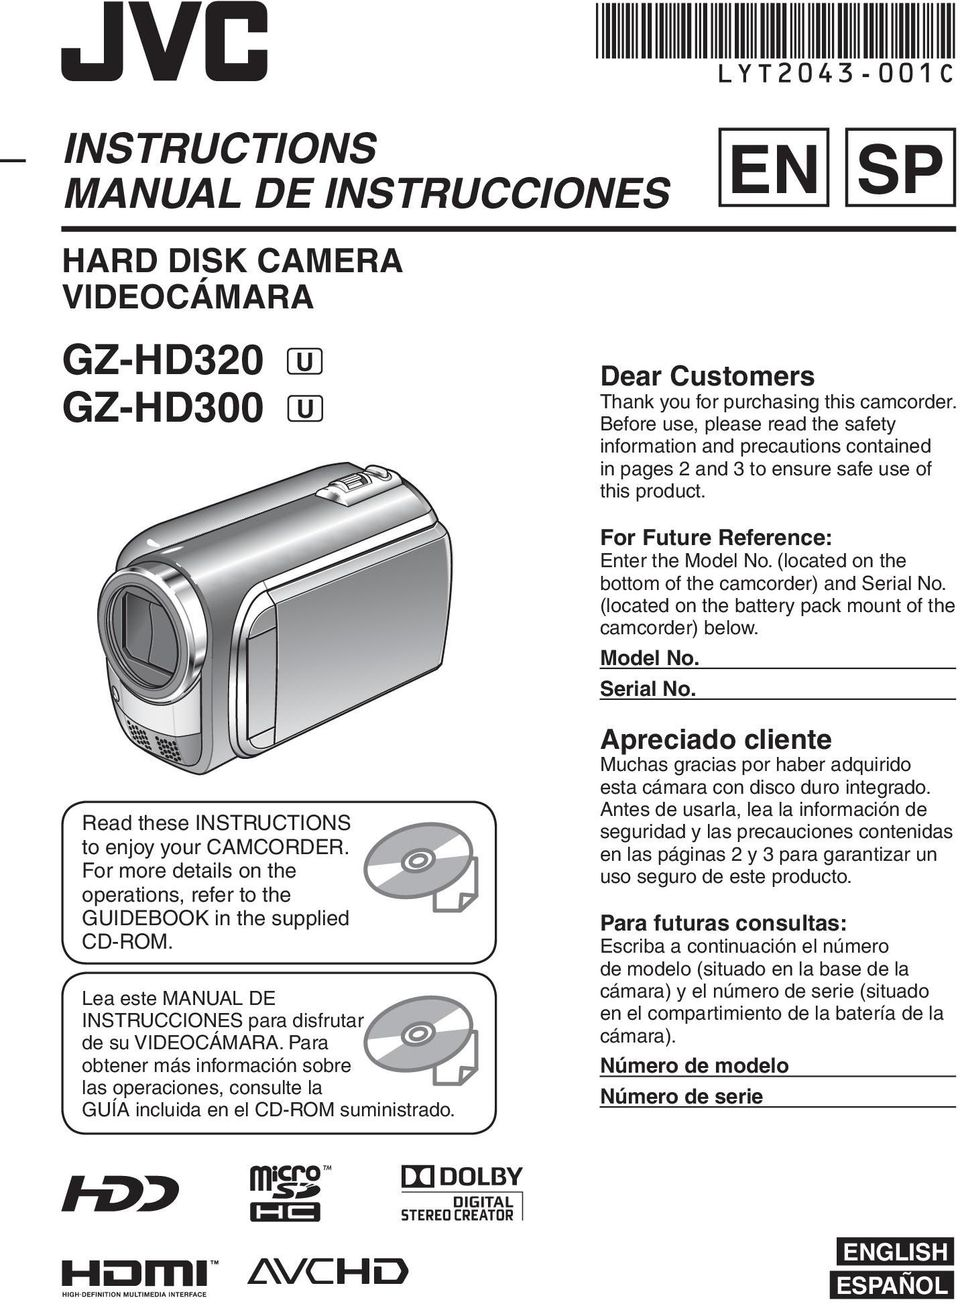 (located on the bottom of the camcorder) and Serial No. (located on the battery pack mount of the camcorder) below. Model No. Serial No. Read these INSTRUCTIONS to enjoy your CAMCORDER.